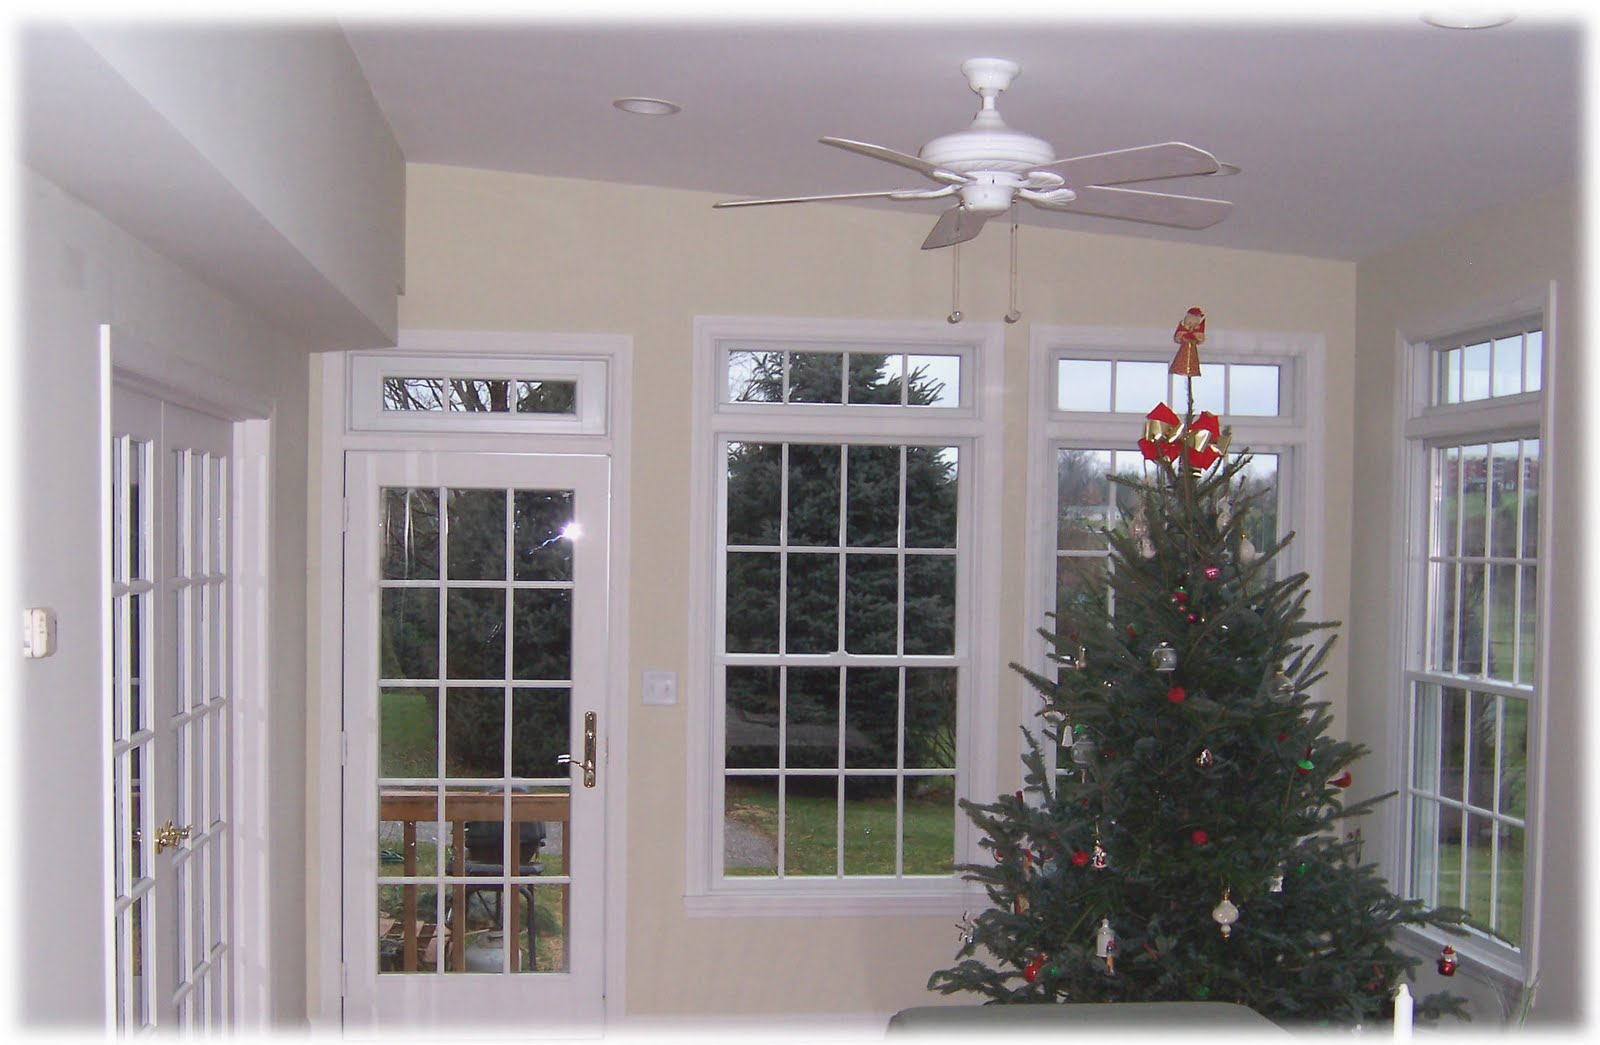 All about window window designs modern or old fashioned for Top window design